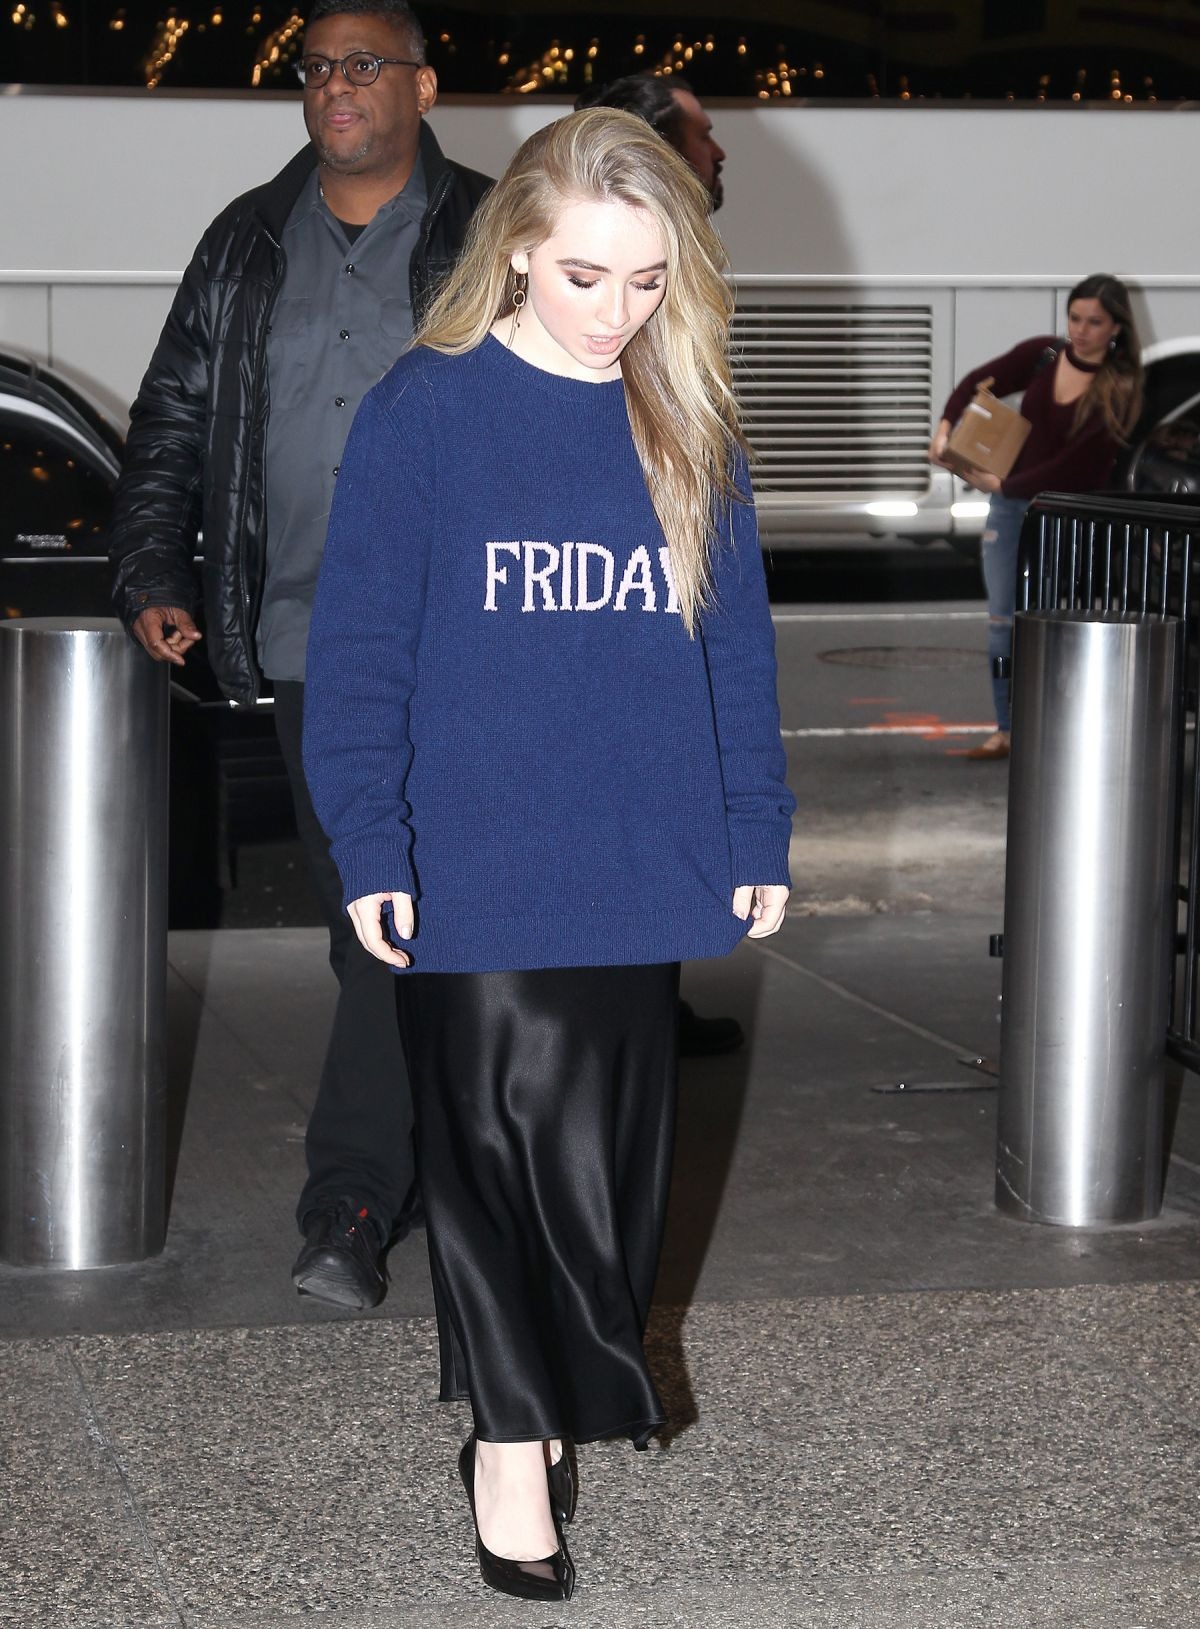 Sabrina Carpenter Arrives to TRL in Time Square in NYC